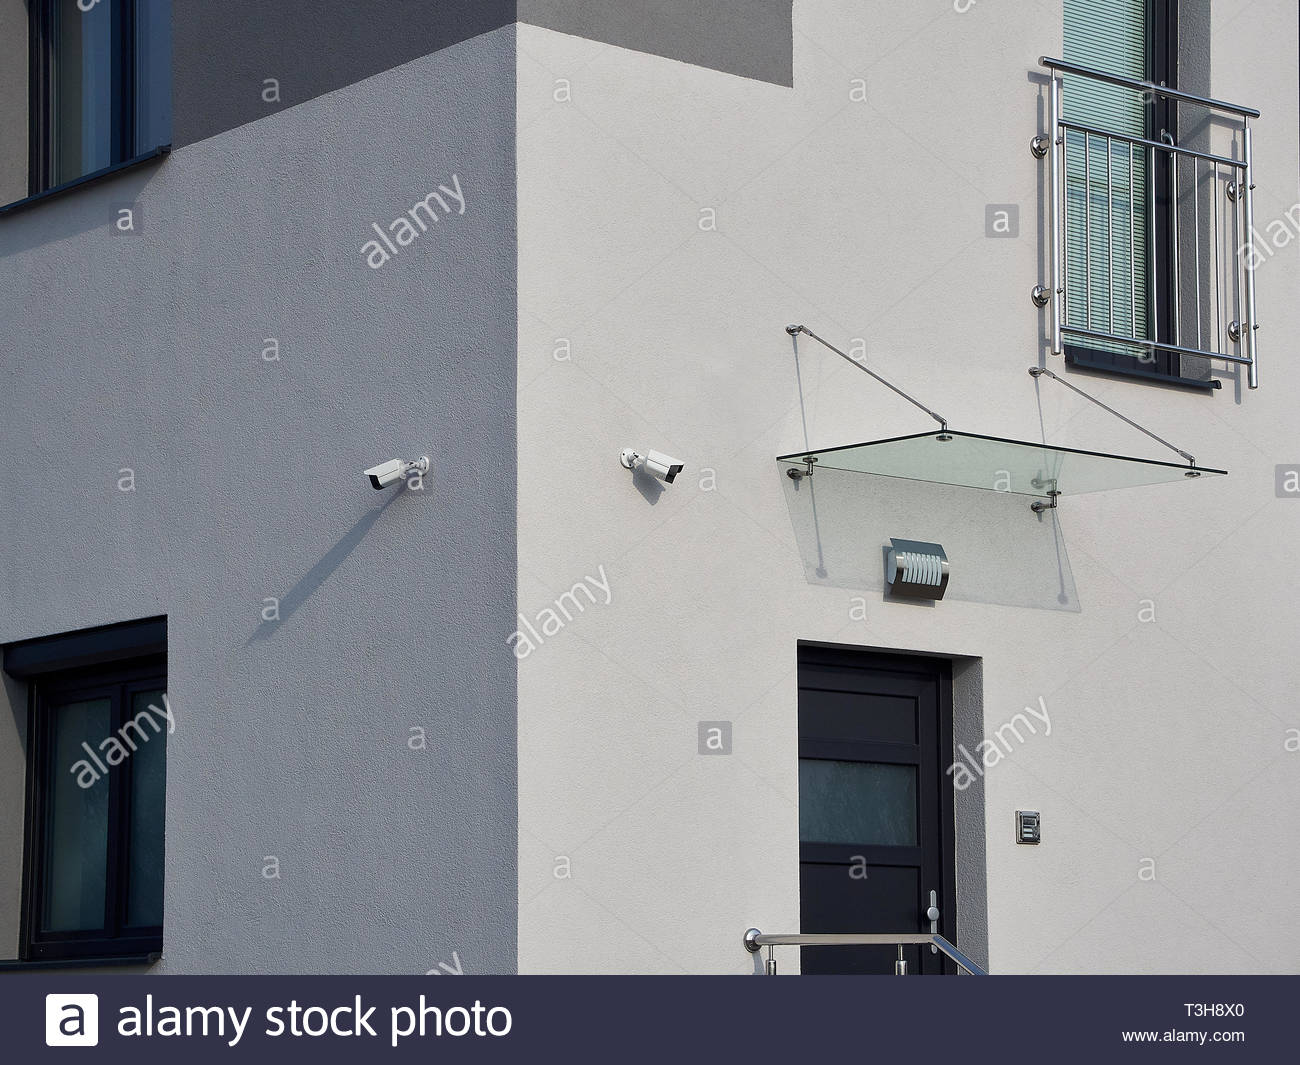 A view of the corner of a white industrial building with two security cameras, doors and windows. - Stock Image